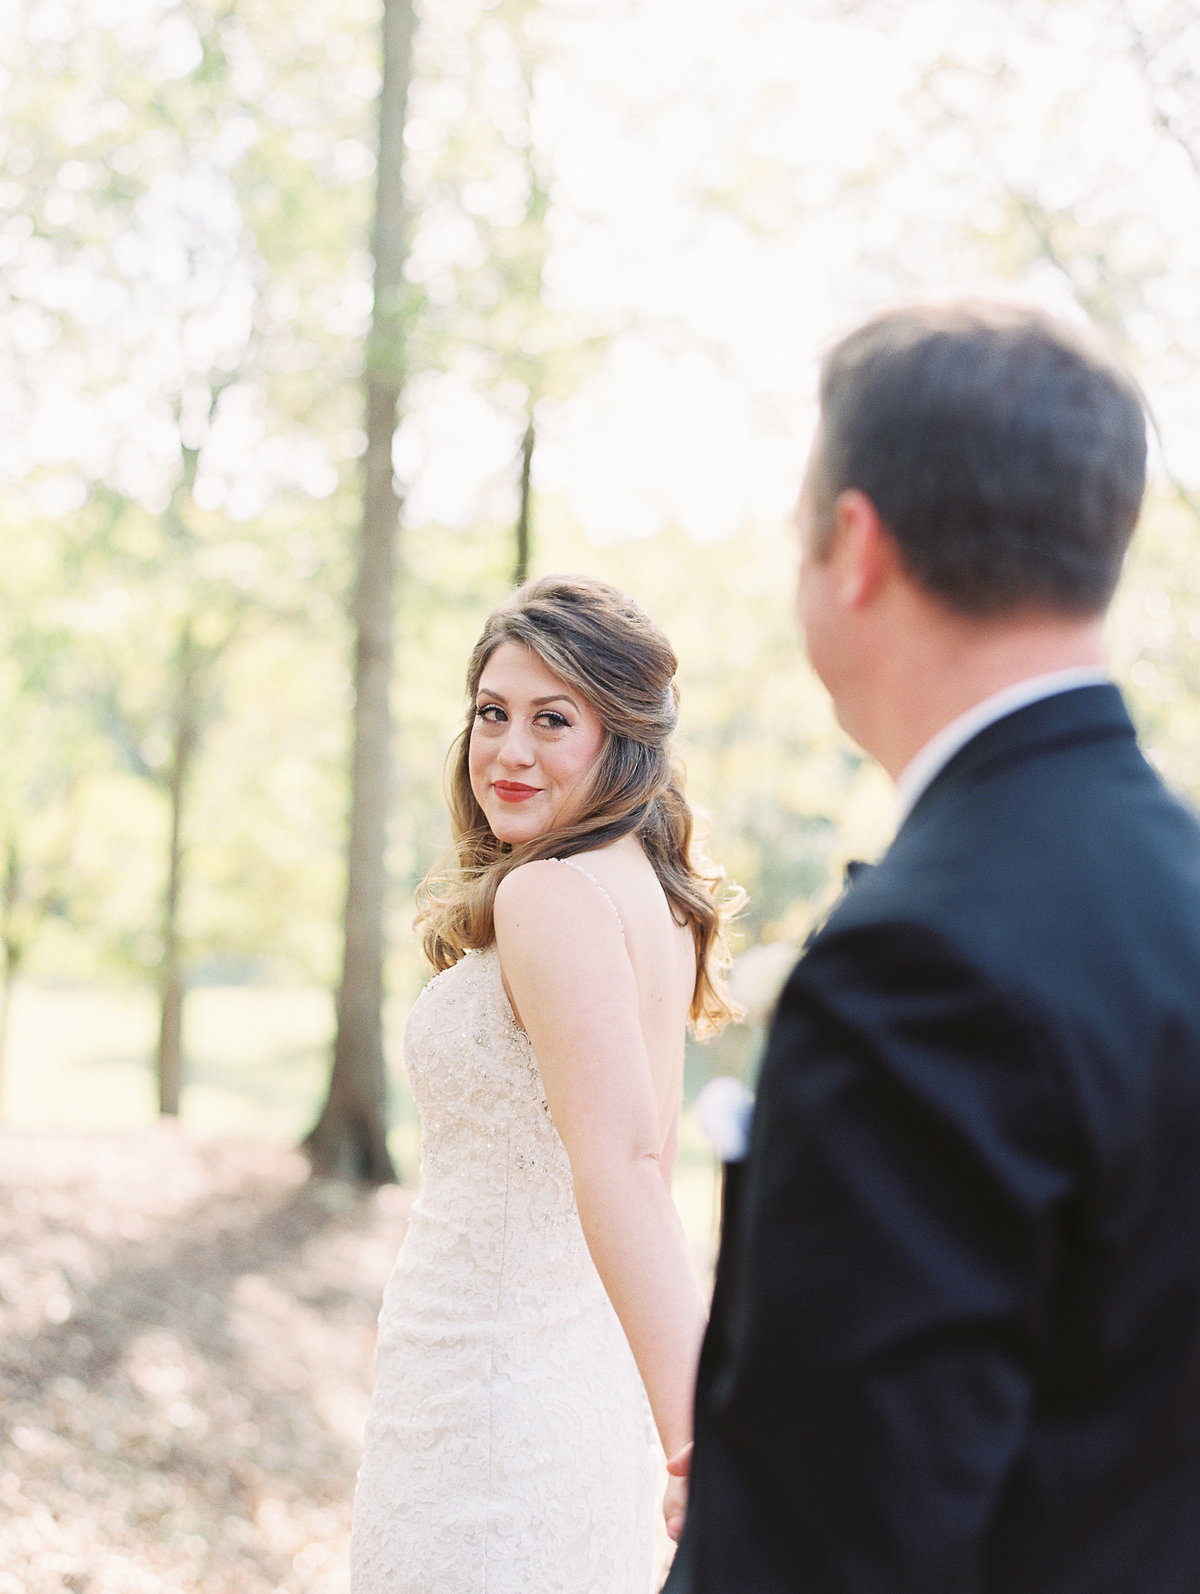 699_Anne & Ryan Wedding_Lindsay Vallas Photog